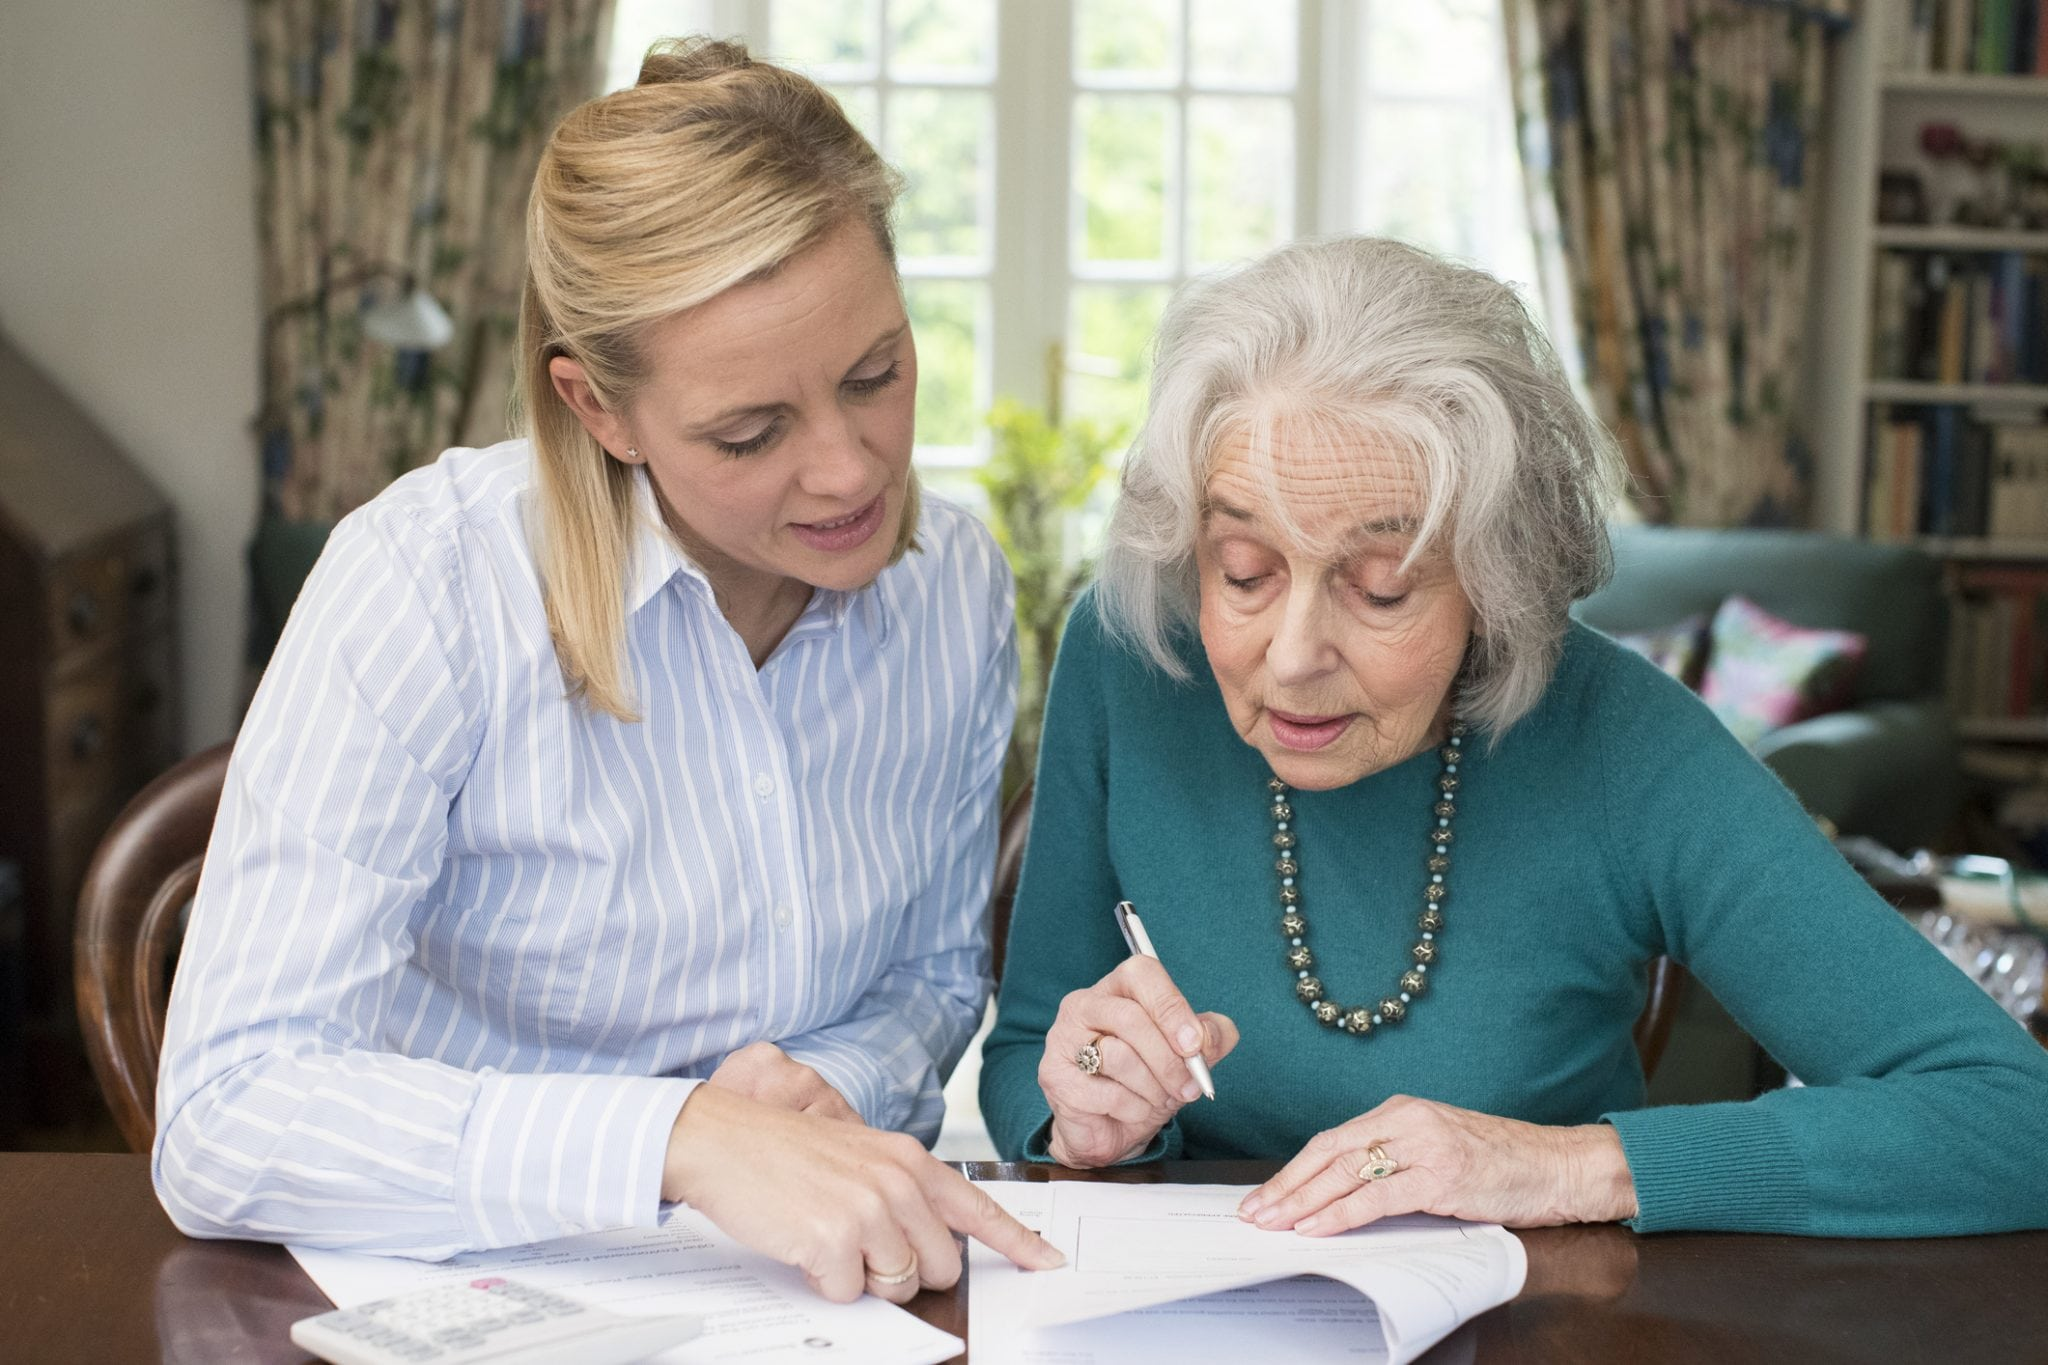 power of attorney empowering family members to make decisions on your behalf